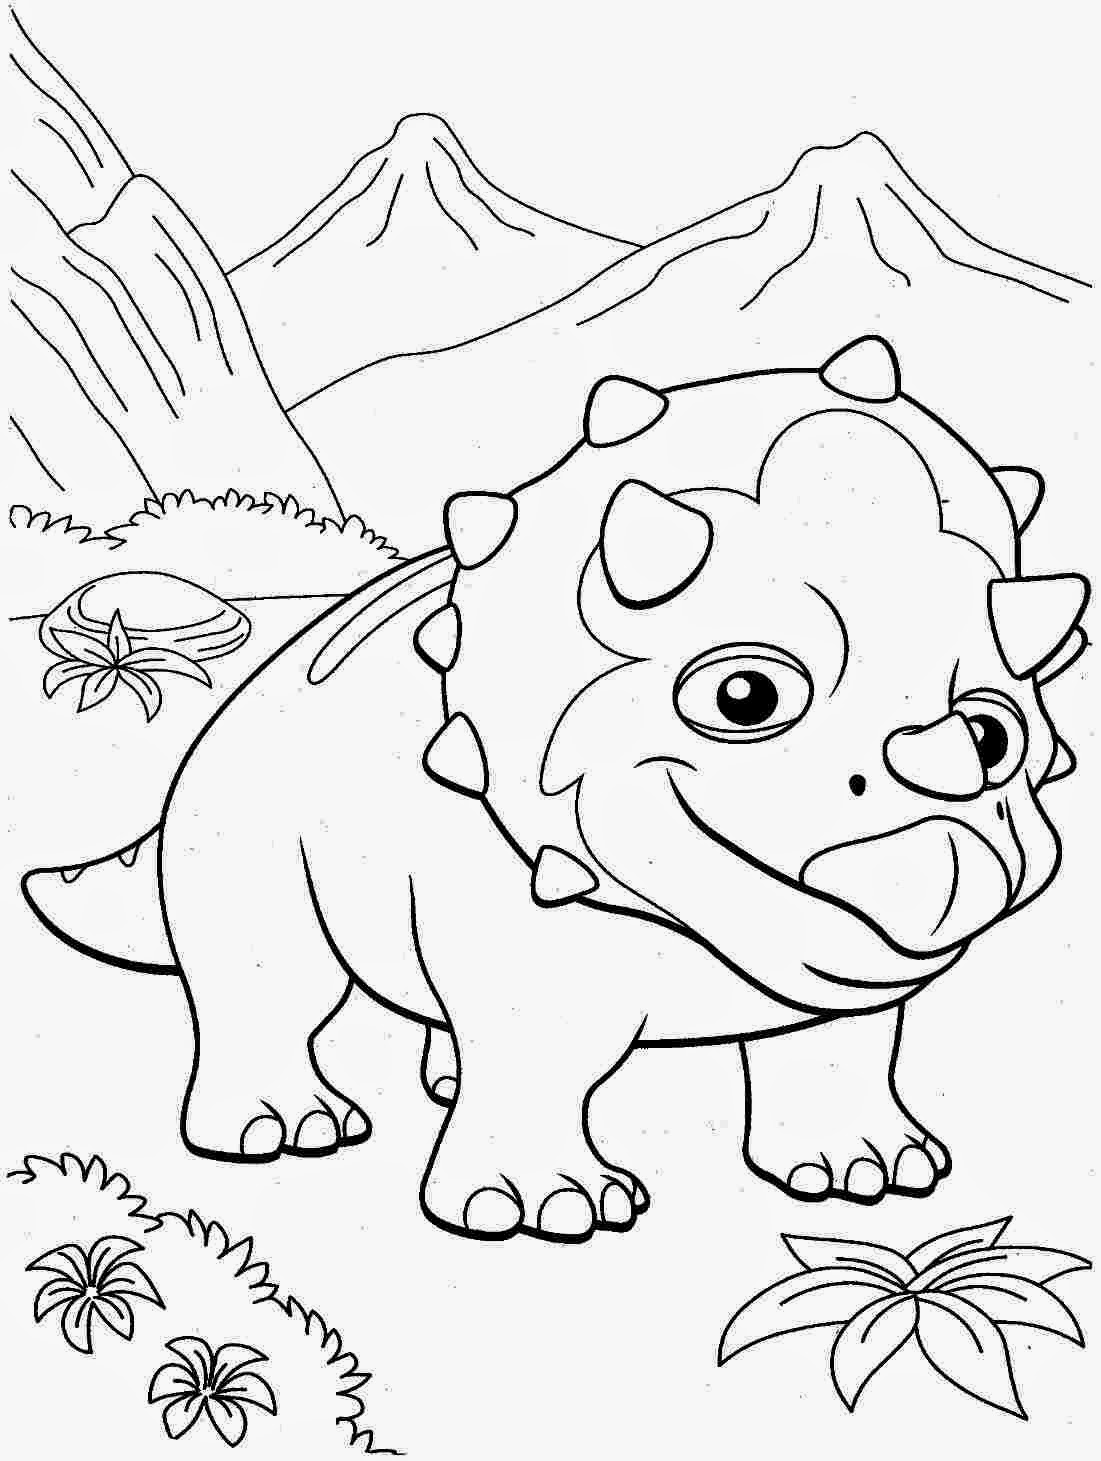 dinosaur colouring pictures to print dinosaur train coloring pages dinosaurs pictures and facts colouring dinosaur pictures print to